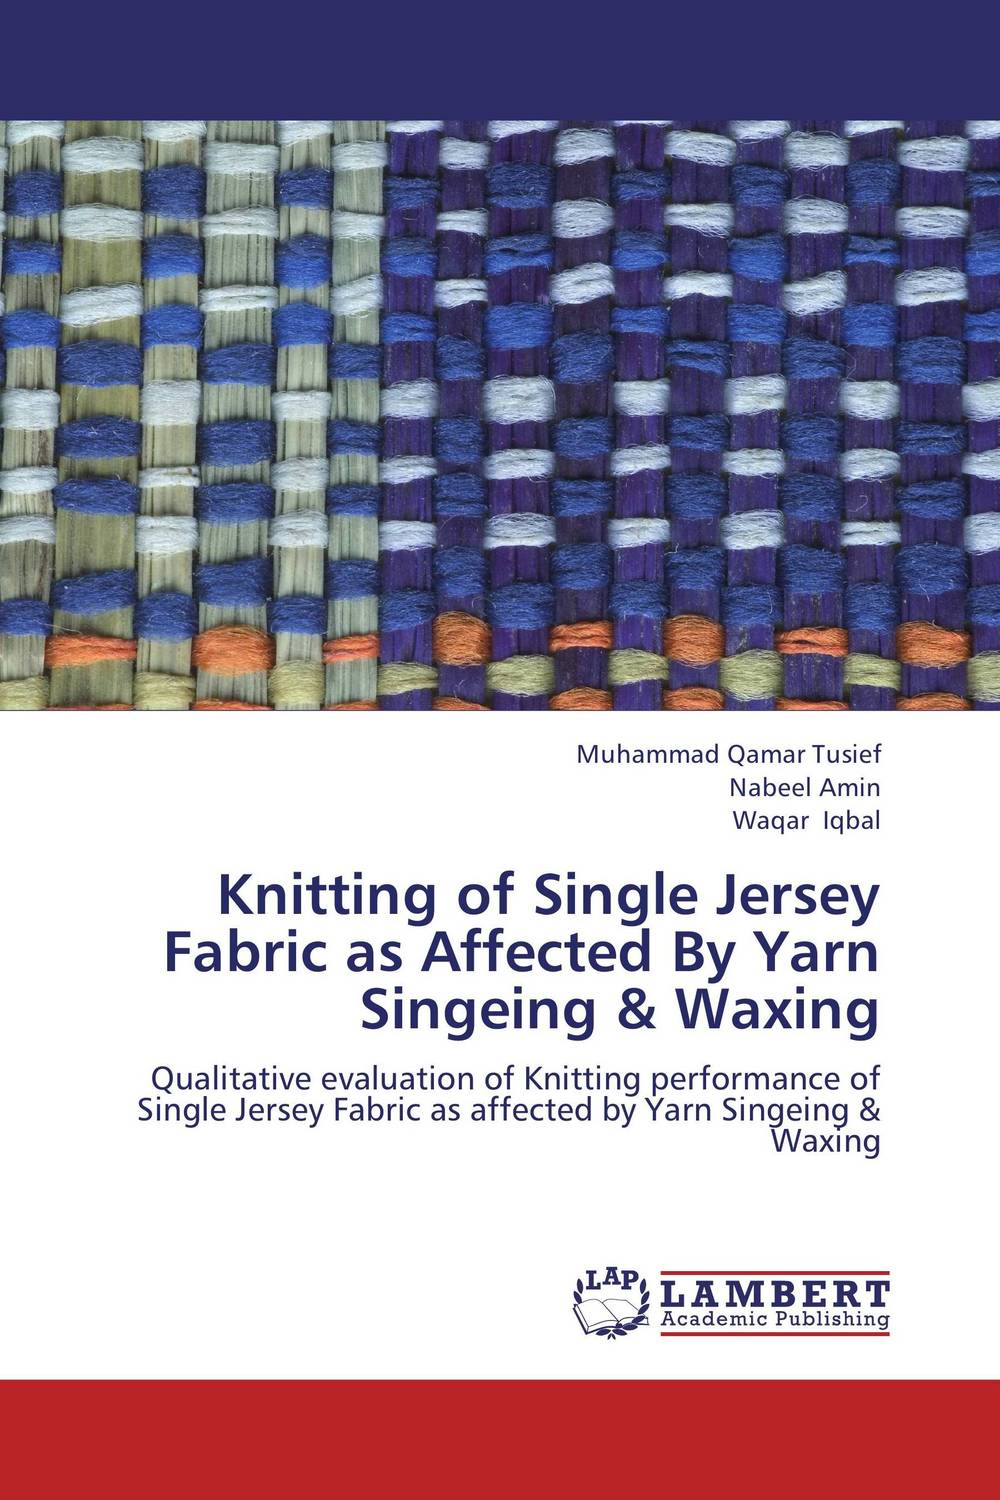 Knitting of Single Jersey Fabric as Affected By Yarn Singeing & Waxing marquez g love in the time of cholera